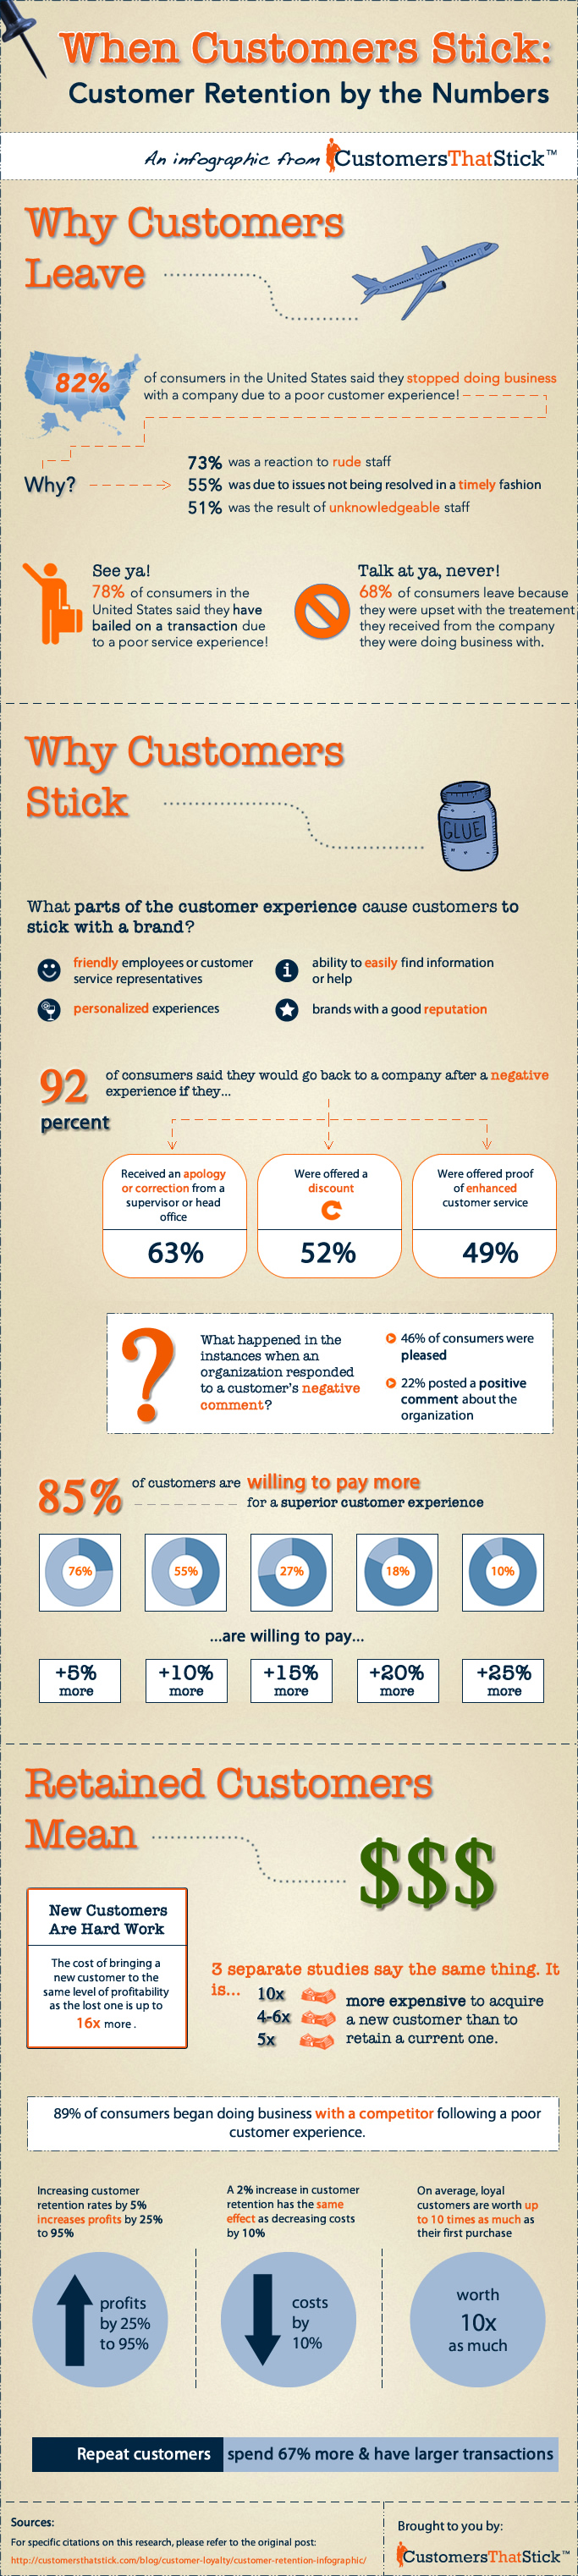 When Customers Stick: Customer Retention by the Numbers